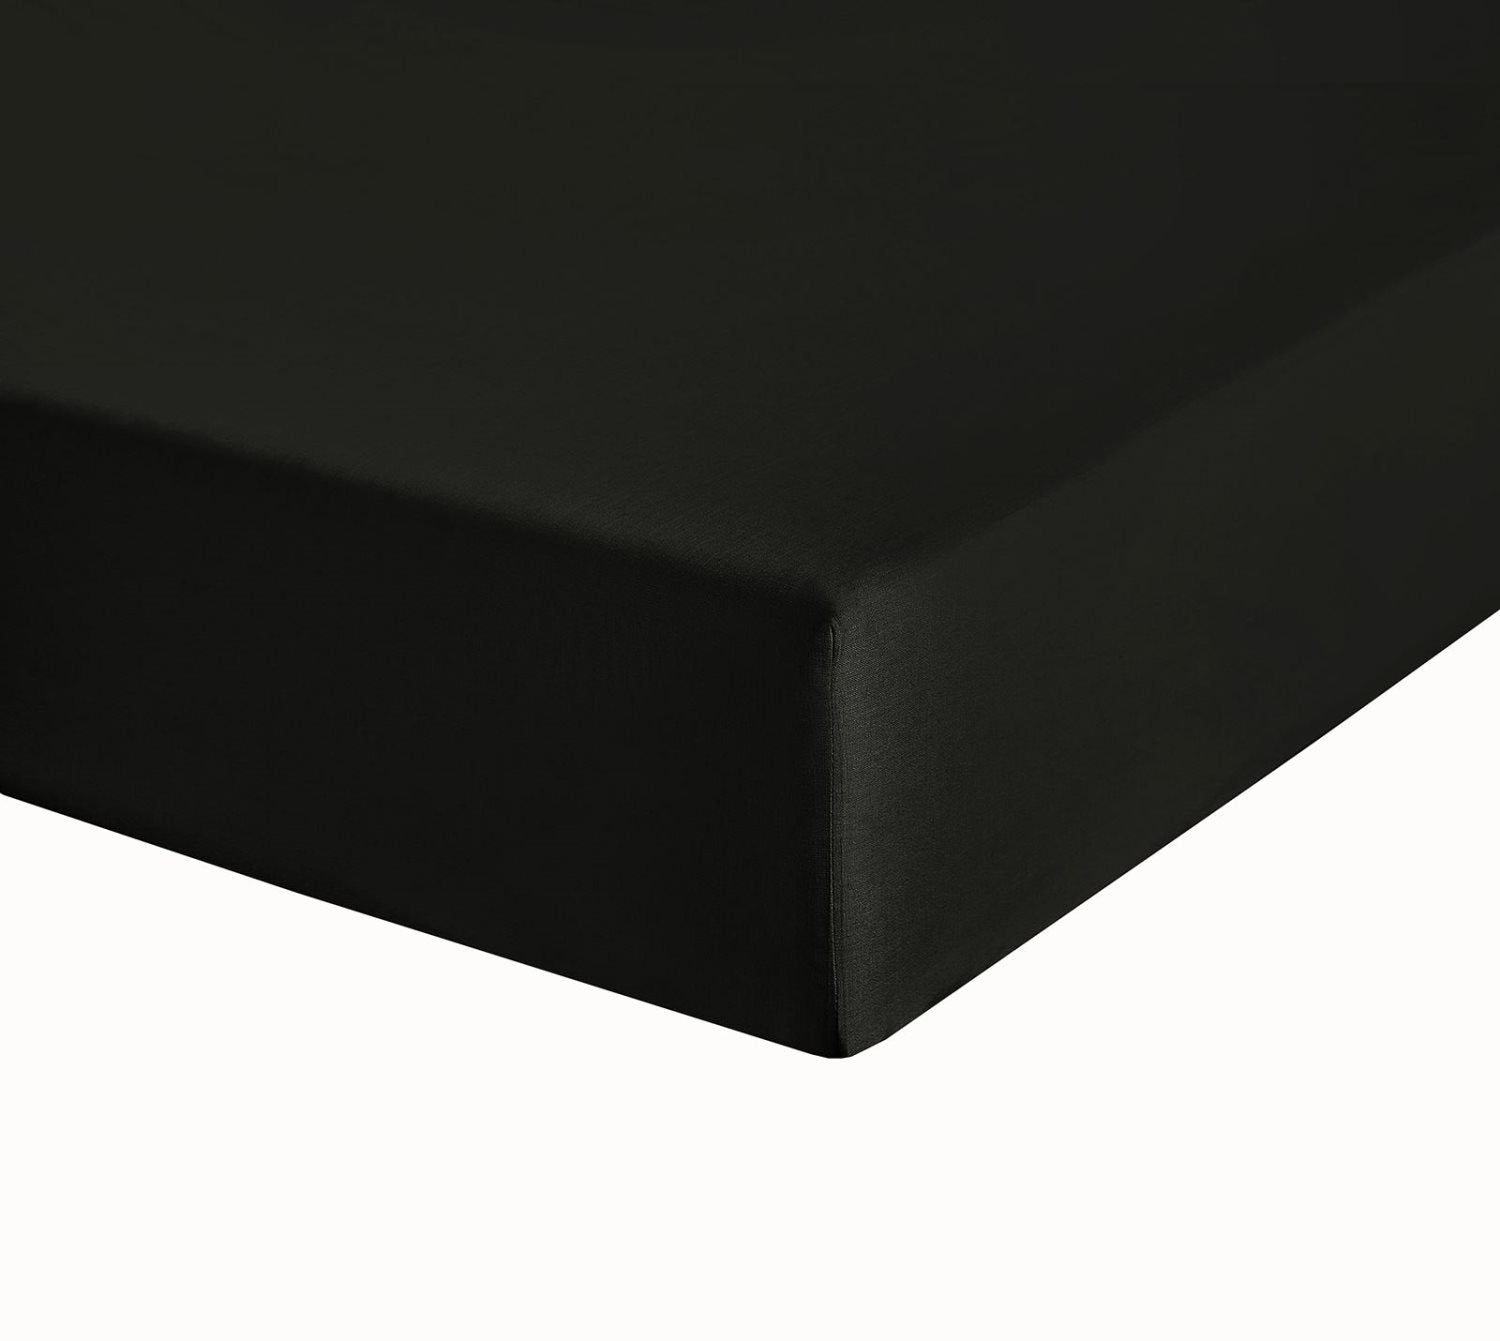 "Black Double Bed Fitted Sheet 10"" Deep Fully Elasticated"